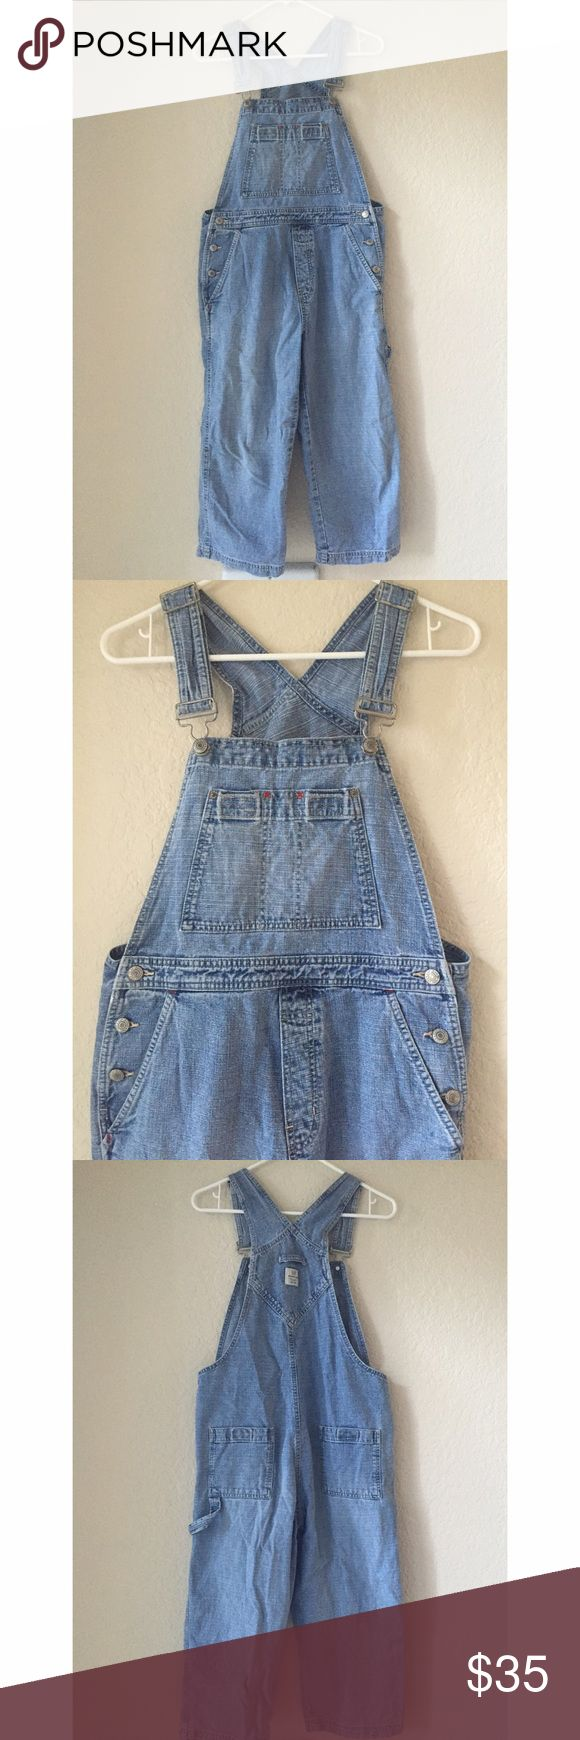 ❄️ GAP women's denim capri overalls These women's GAP capri/cropped overalls are in excellent condition! Really cute for spring or fall. Size Small. GAP Jeans Overalls